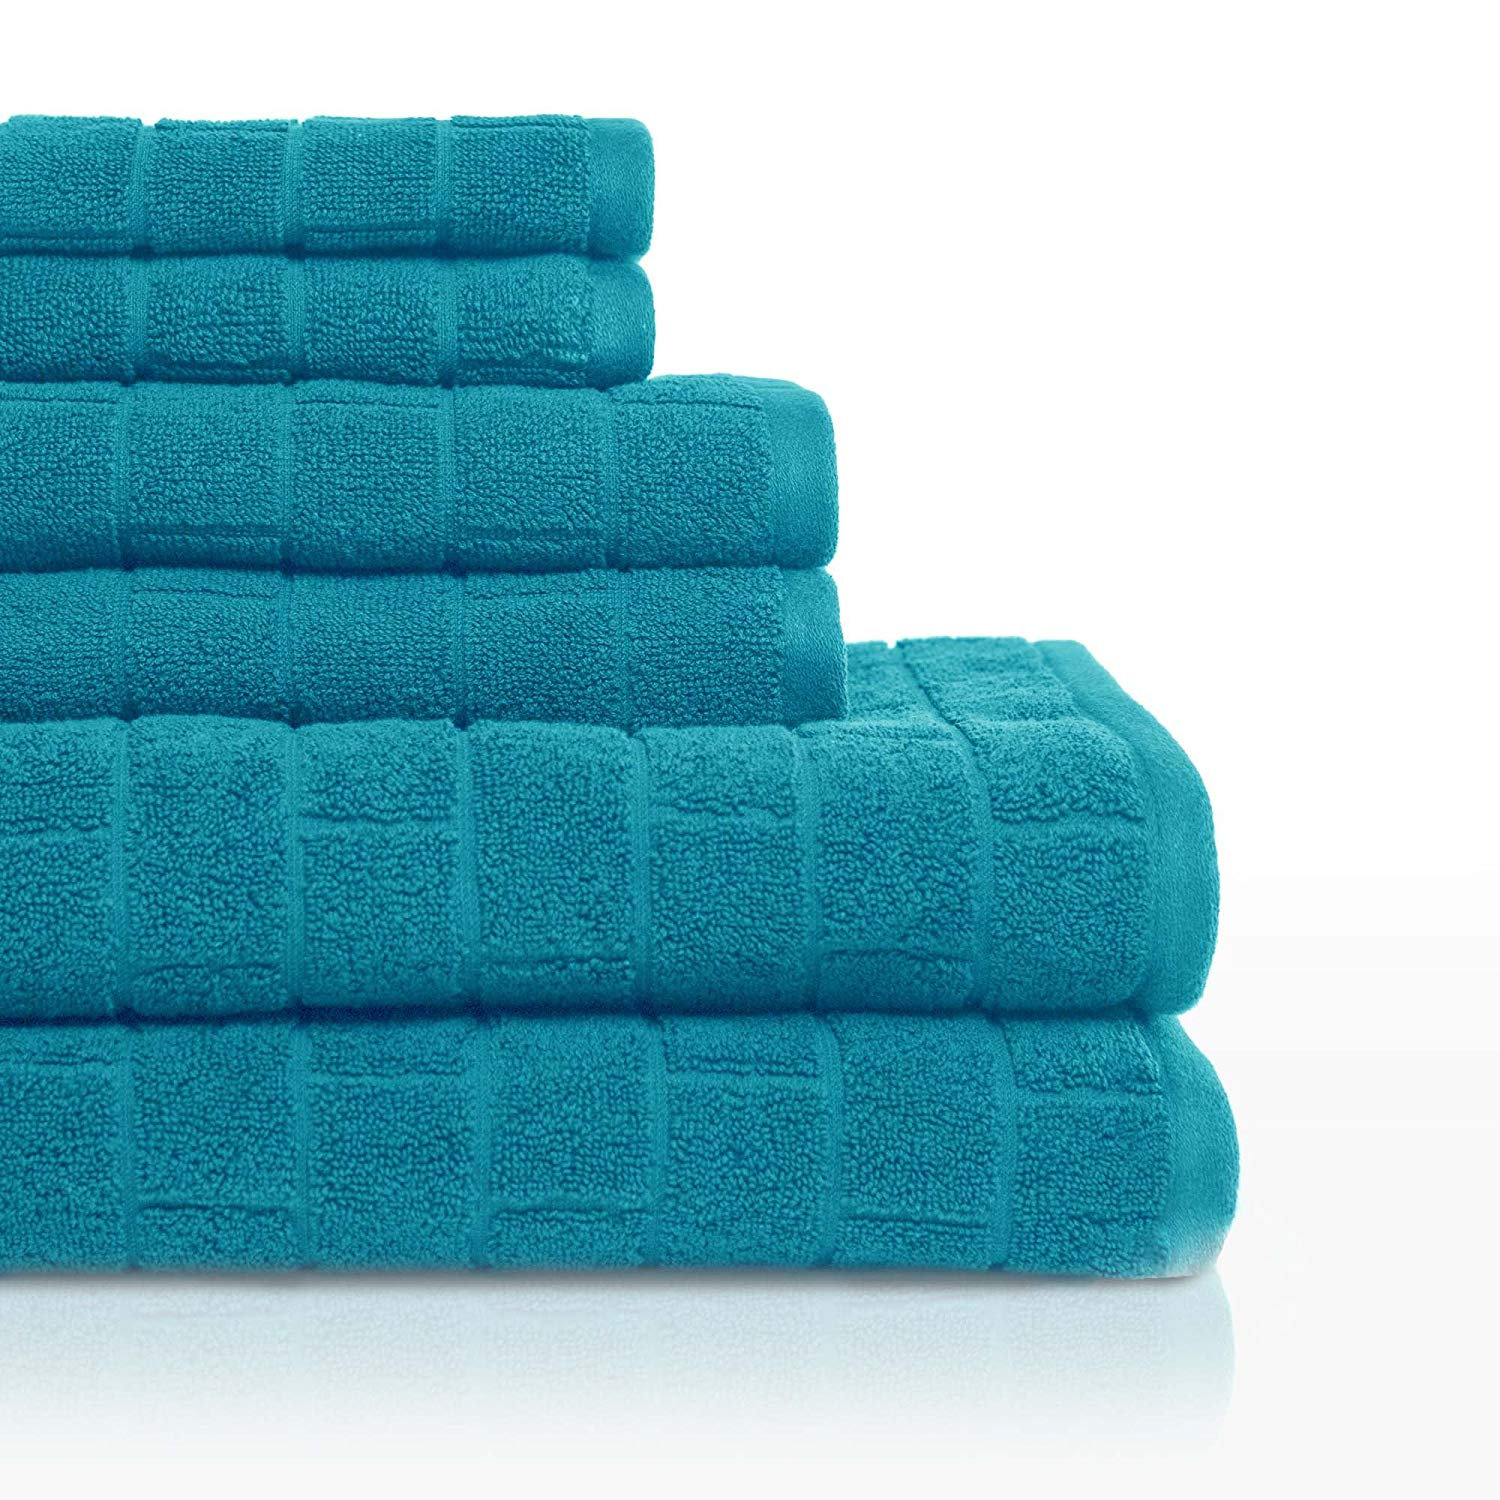 Inspiration: Cobblestone Tiles 6 Piece Textured Bath Towel Set, 6 Piece, Teal